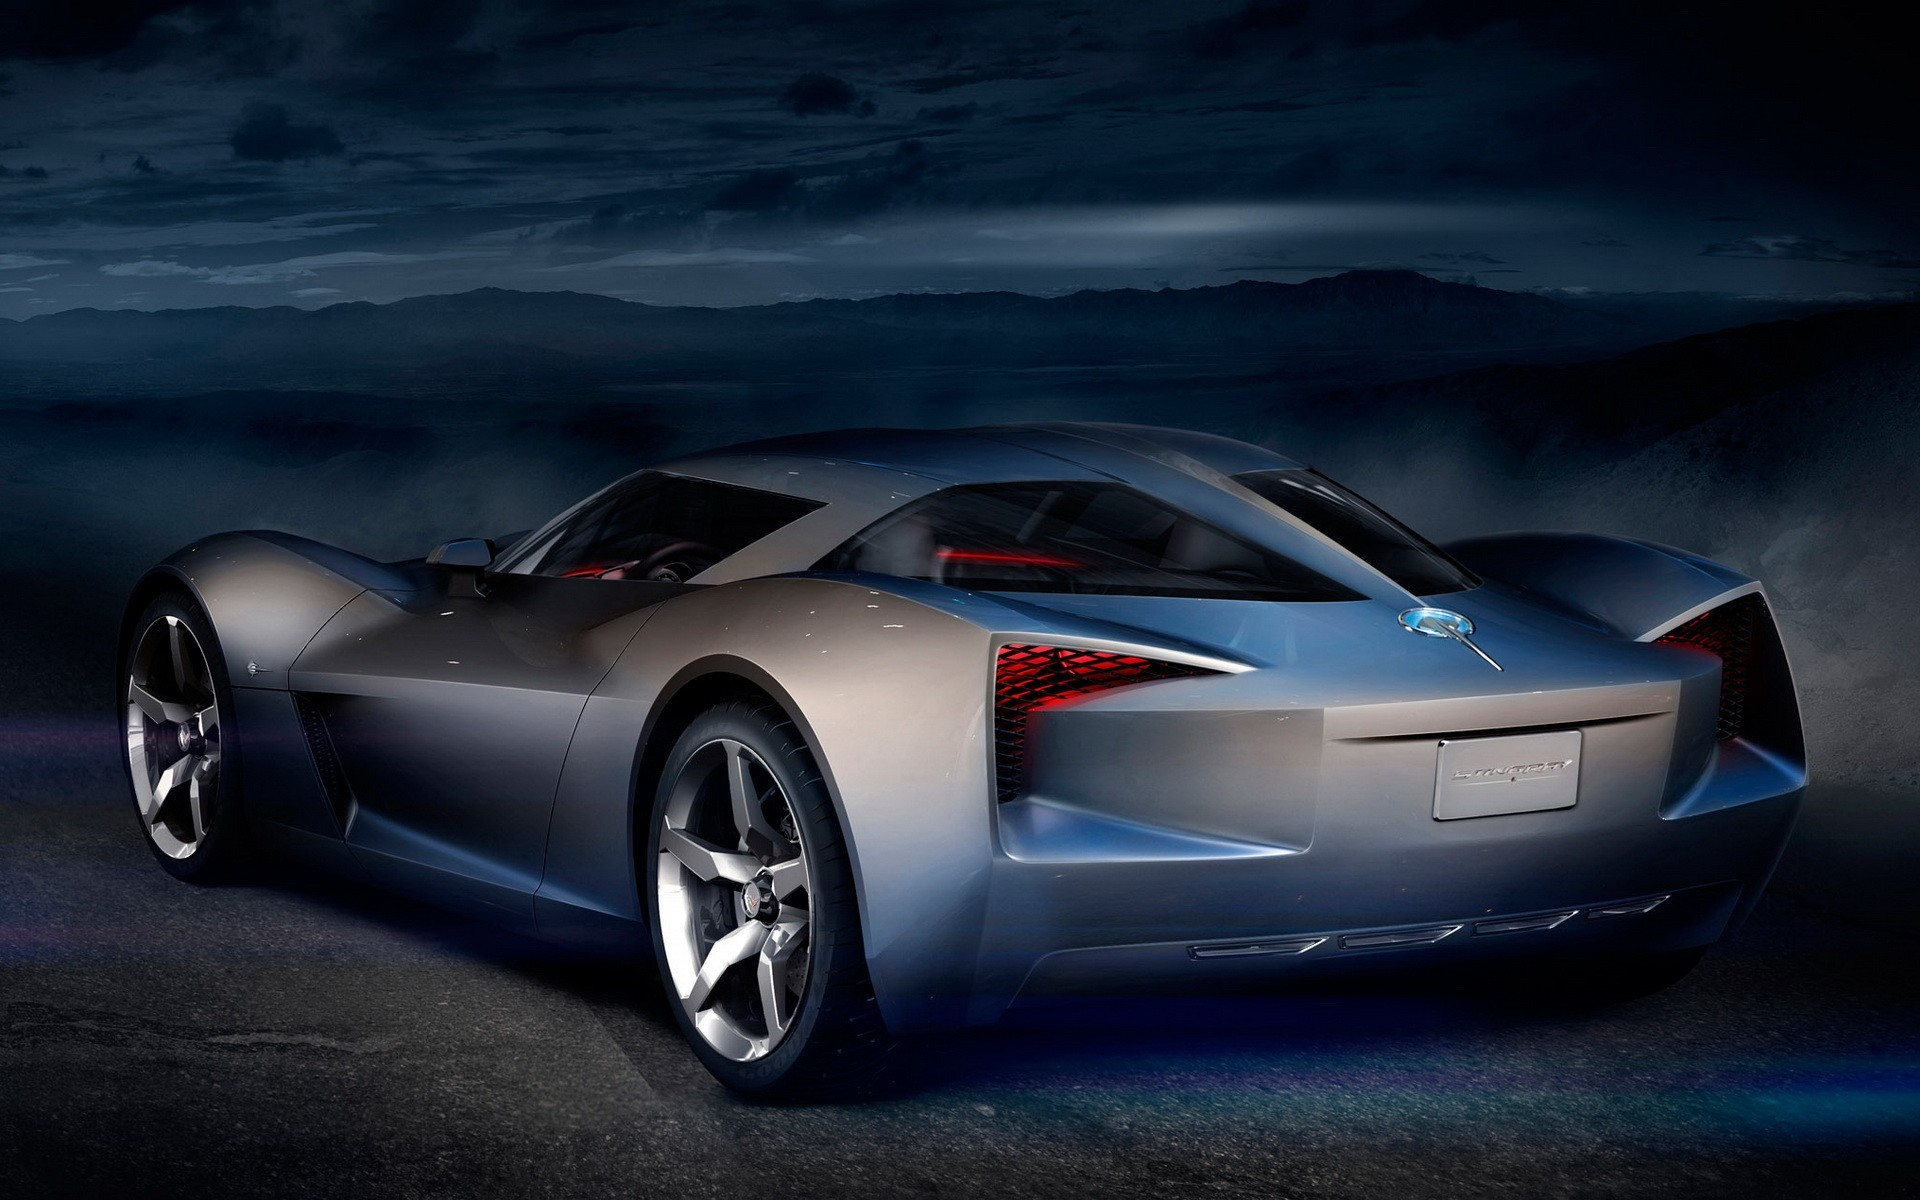 Chevrolet Corvette Stingray wallpaper 3683 1920x1200